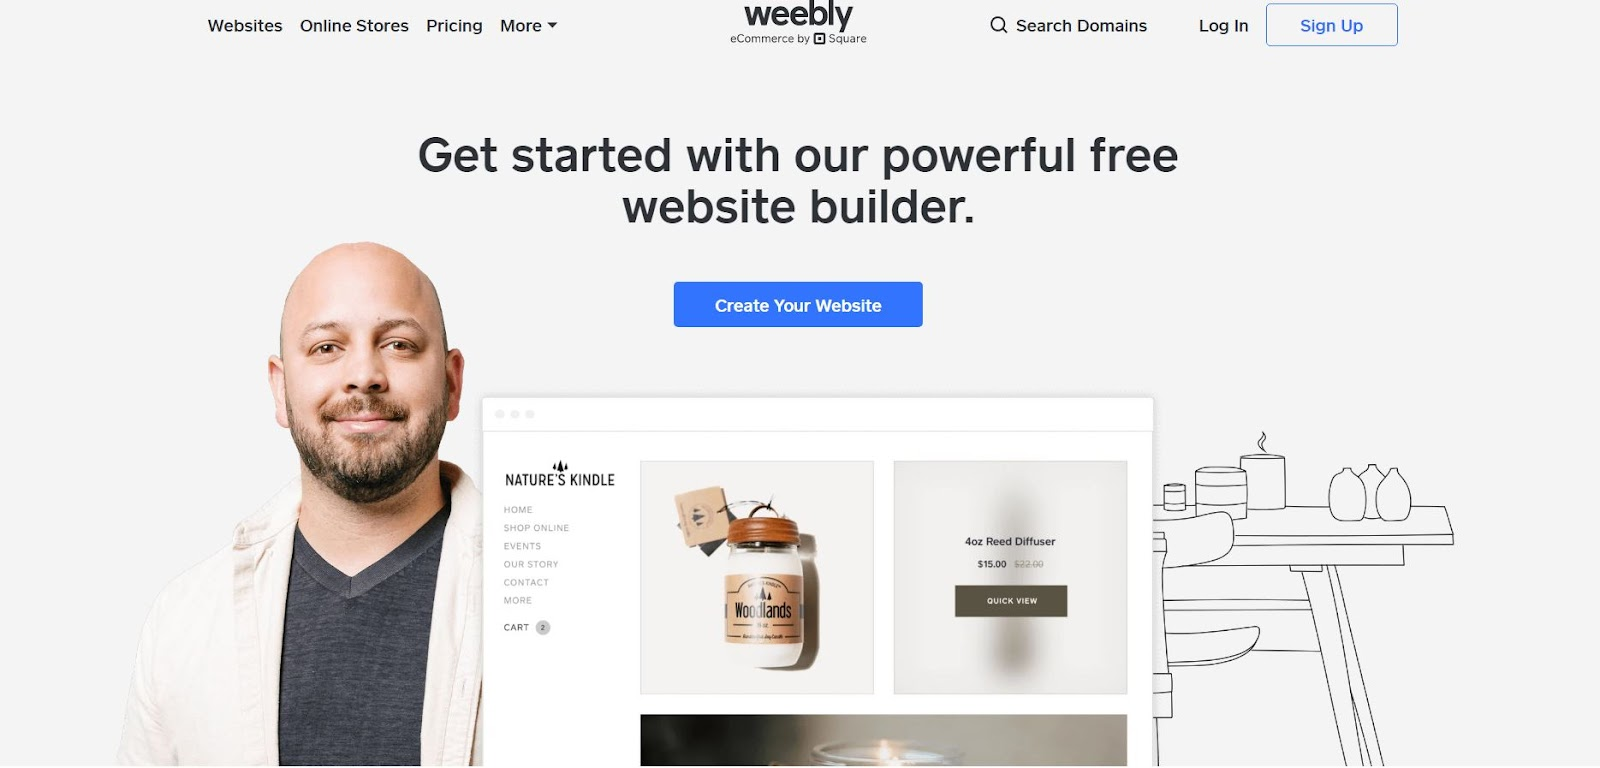 Weebly: The Top 10 Website Platforms for Woodworkers and Makers